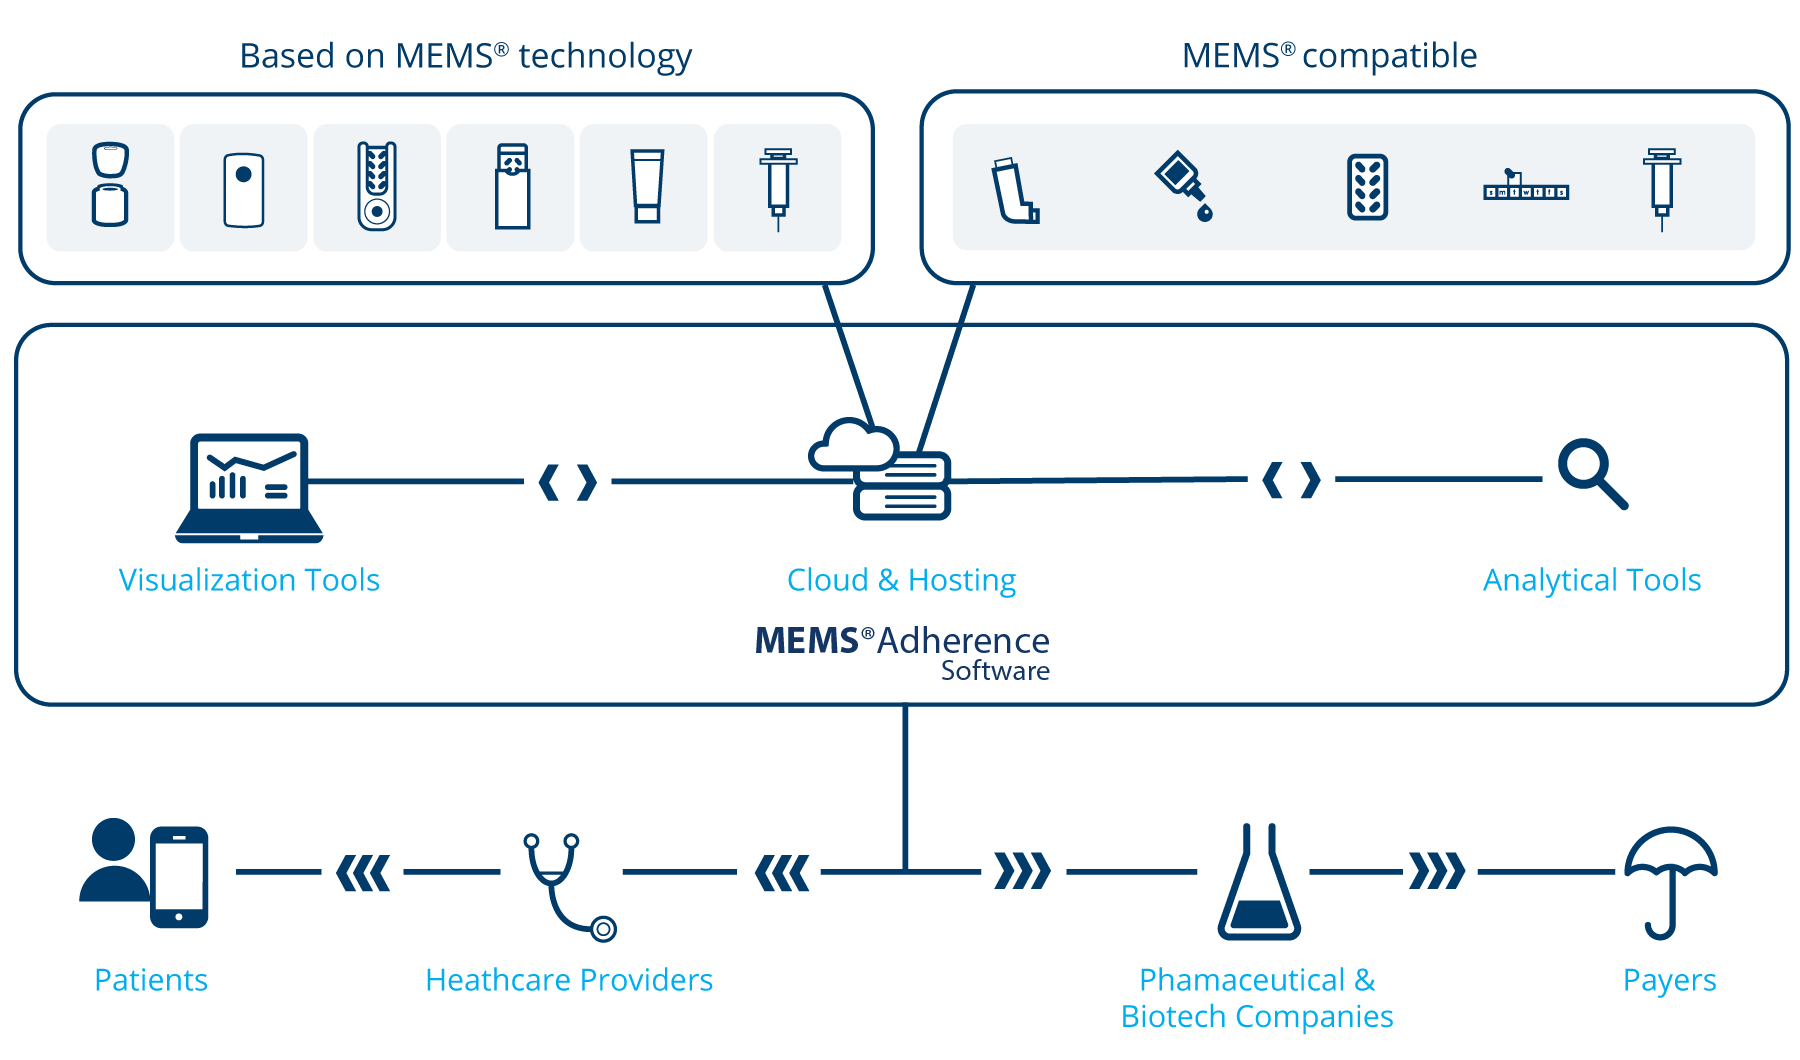 Schema of our MEMS® Adherence solutions